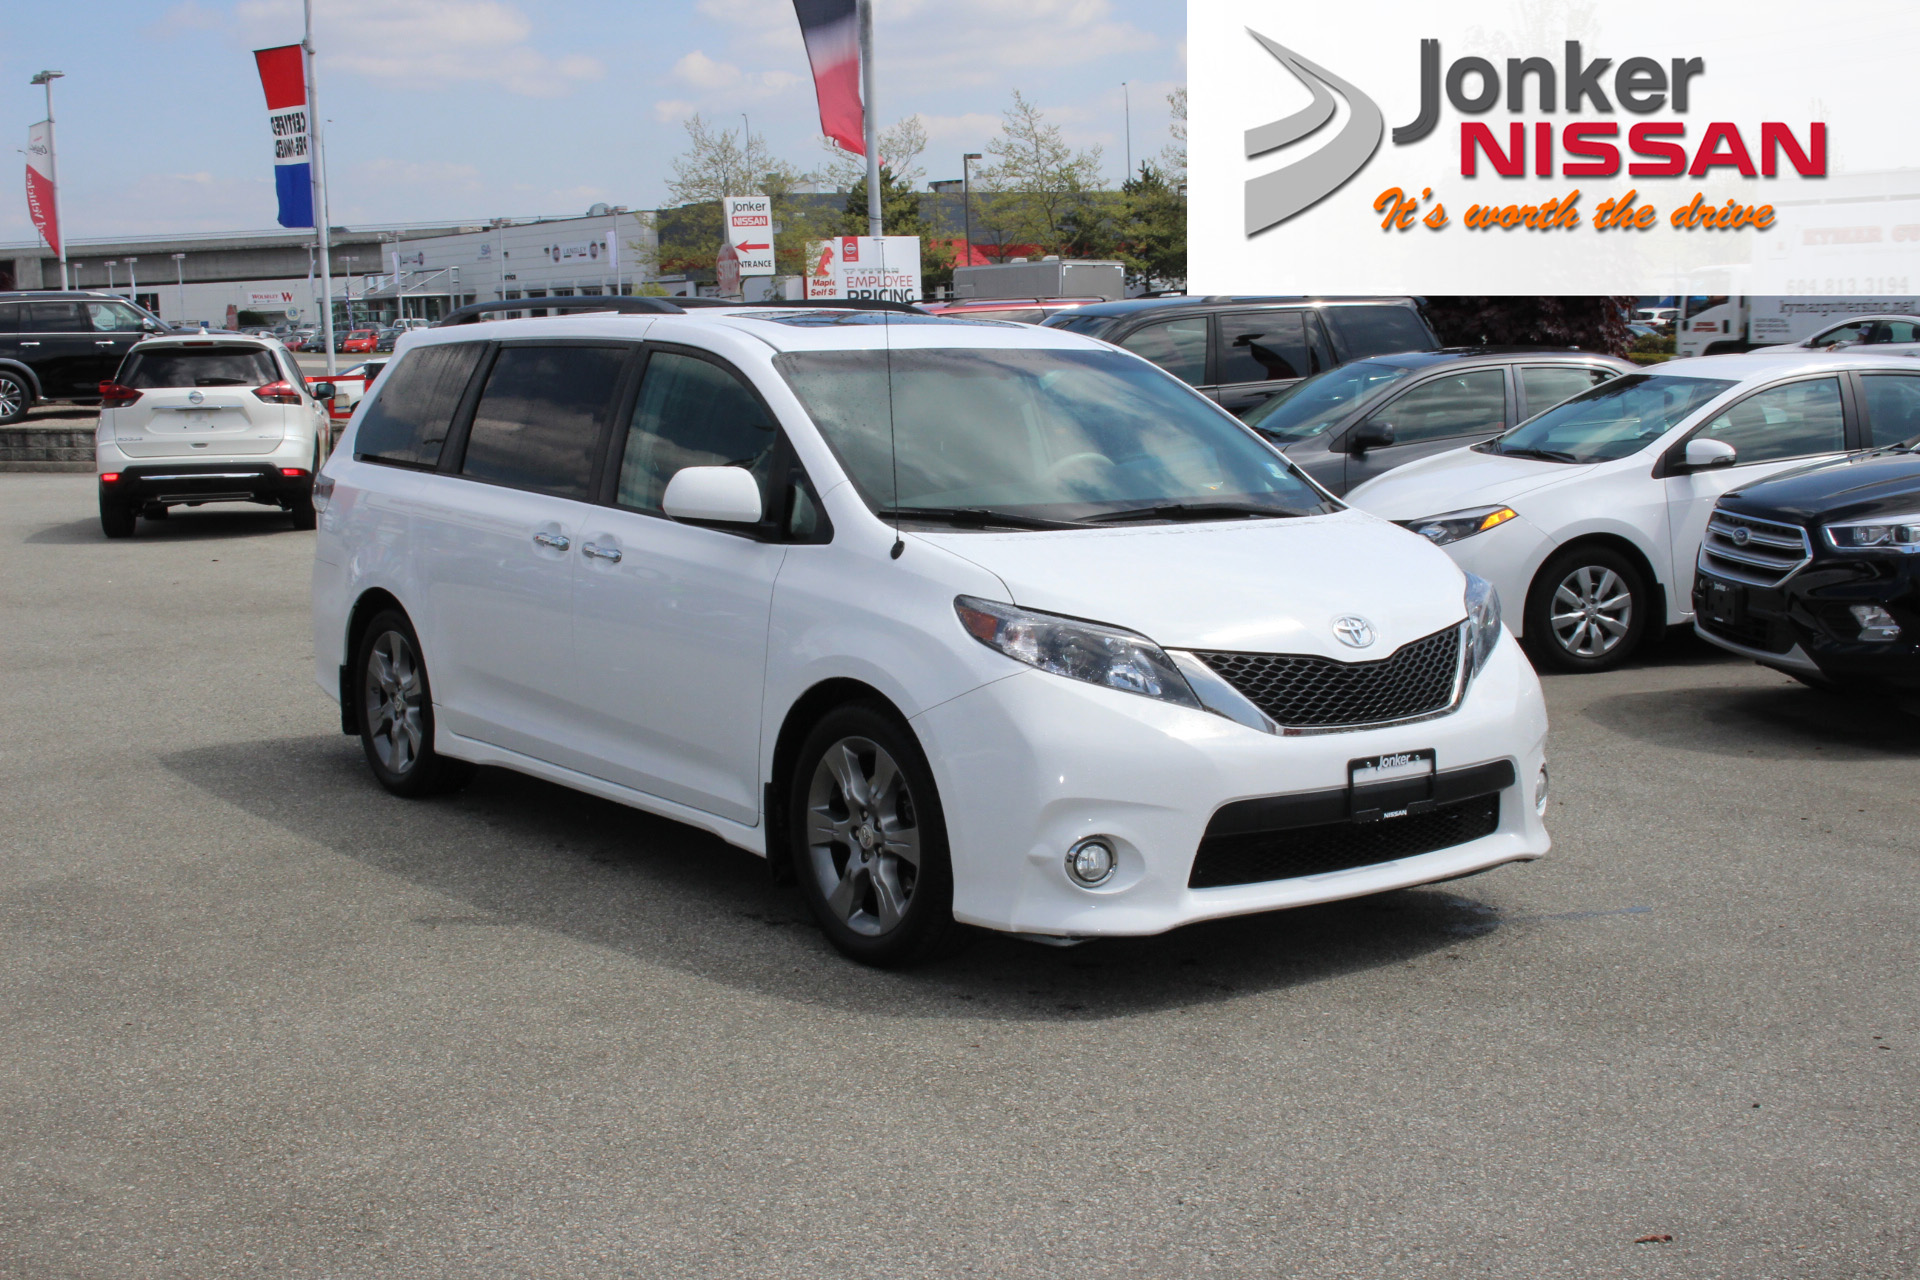 Used Toyota Sienna For Sale Abbotsford, BC - CarGurus